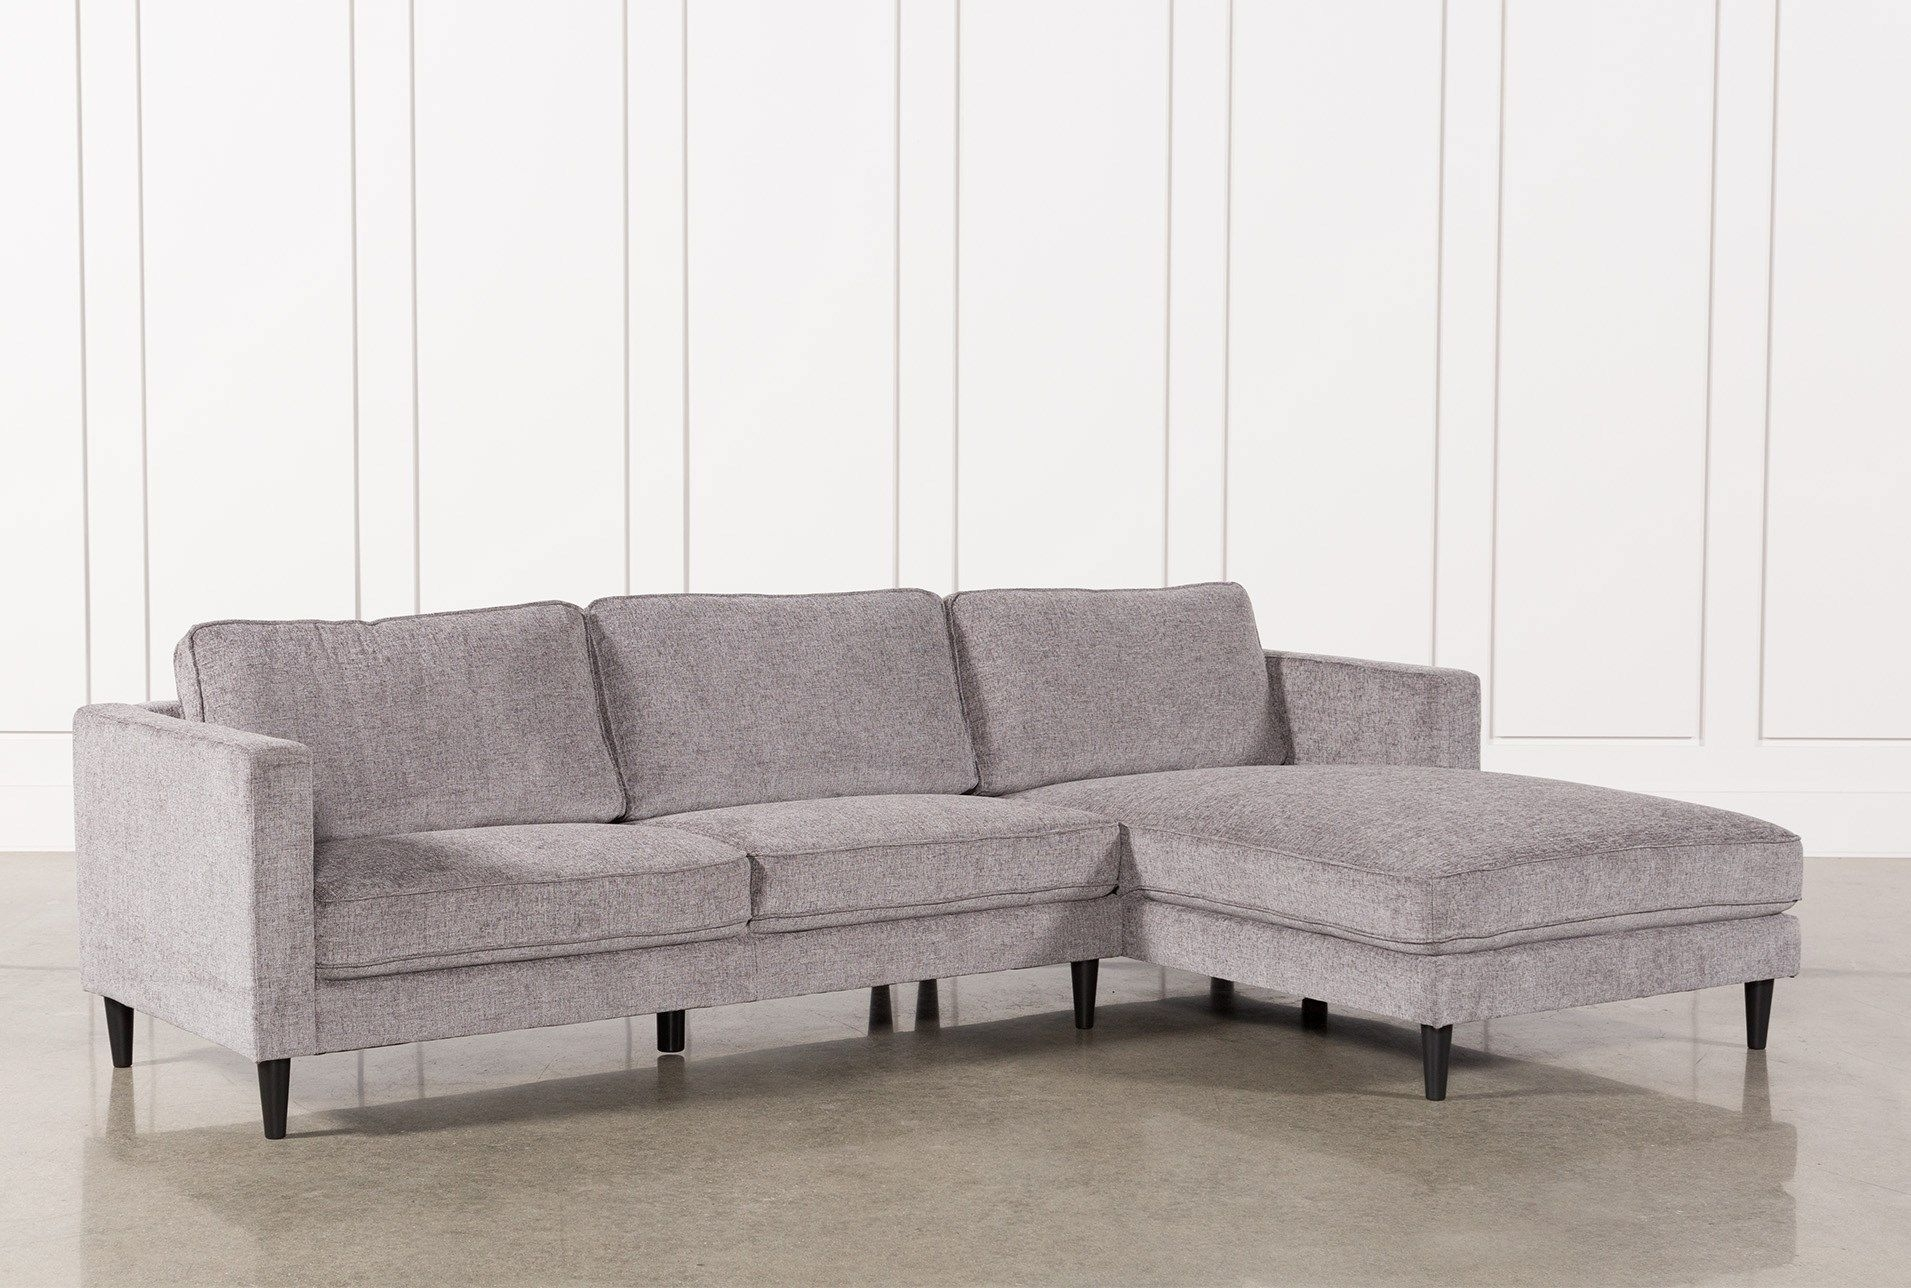 Cosmos Grey 2 Piece Sectional W/raf Chaise | Furniture | Pinterest pertaining to Kerri 2 Piece Sectionals With Raf Chaise (Image 9 of 30)